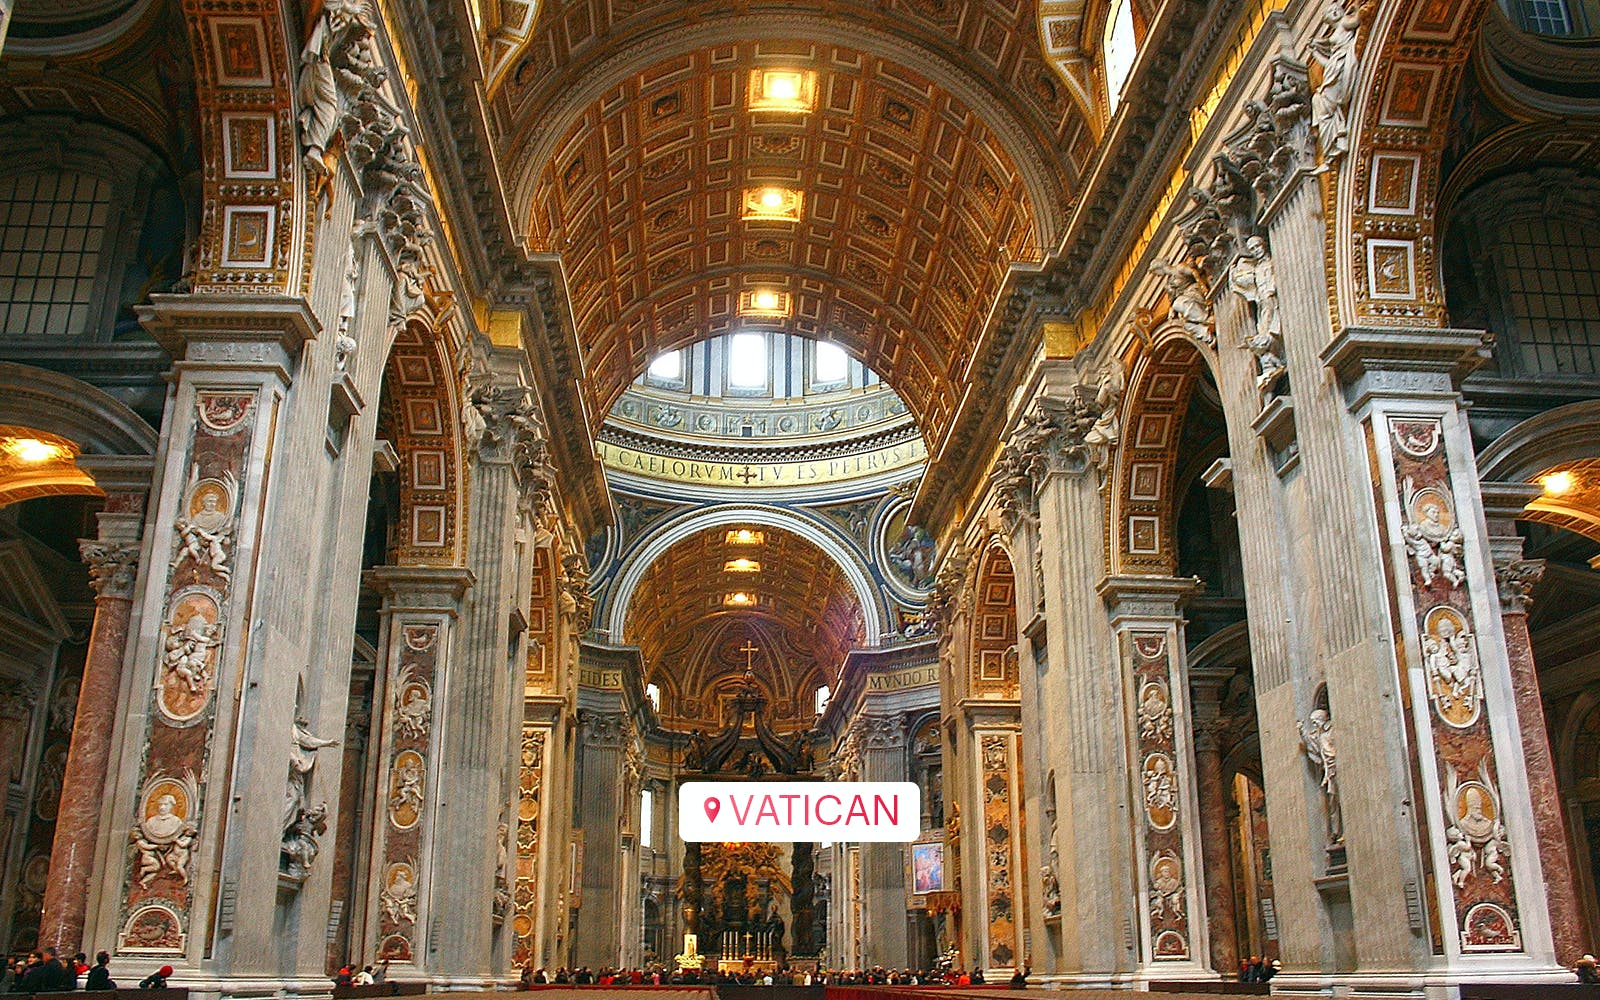 guided tour of the vatican museums, sistine chapel and st. peter's basilica-5